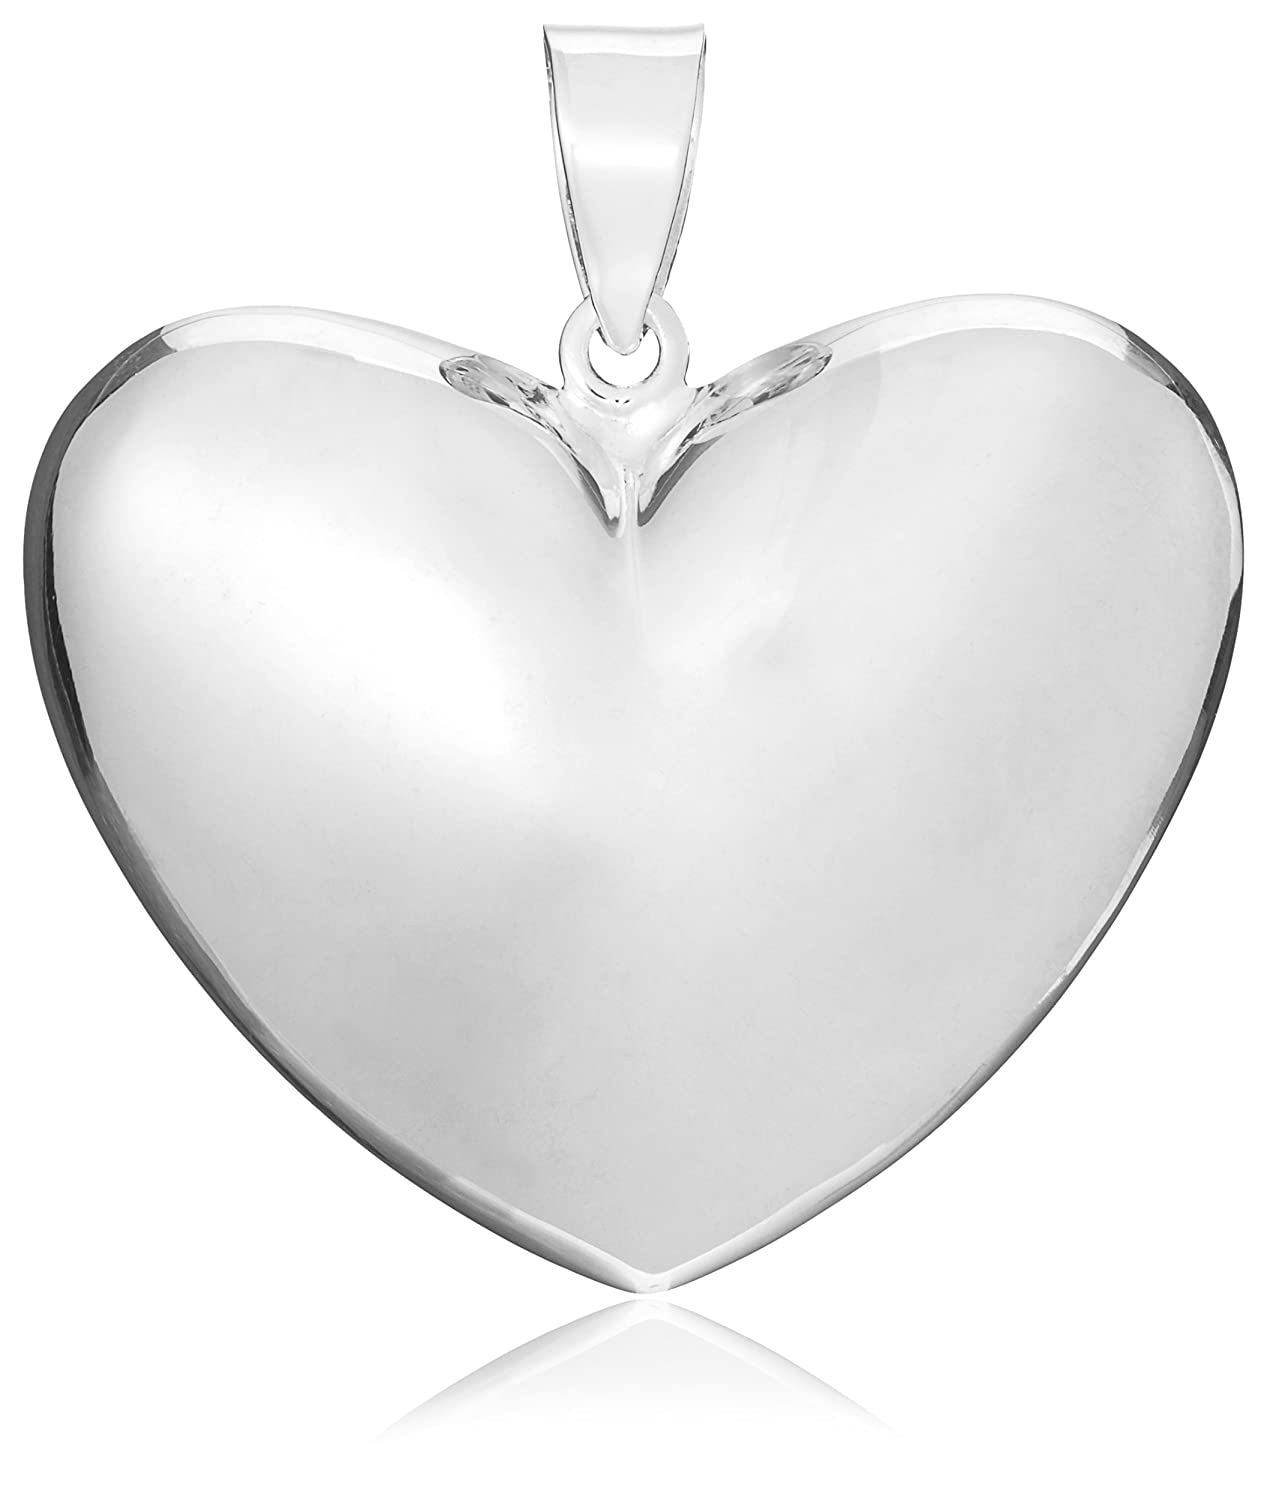 Tuscany silver sterling silver large puffed heart pendant amazon tuscany silver sterling silver large puffed heart pendant amazon jewellery aloadofball Images